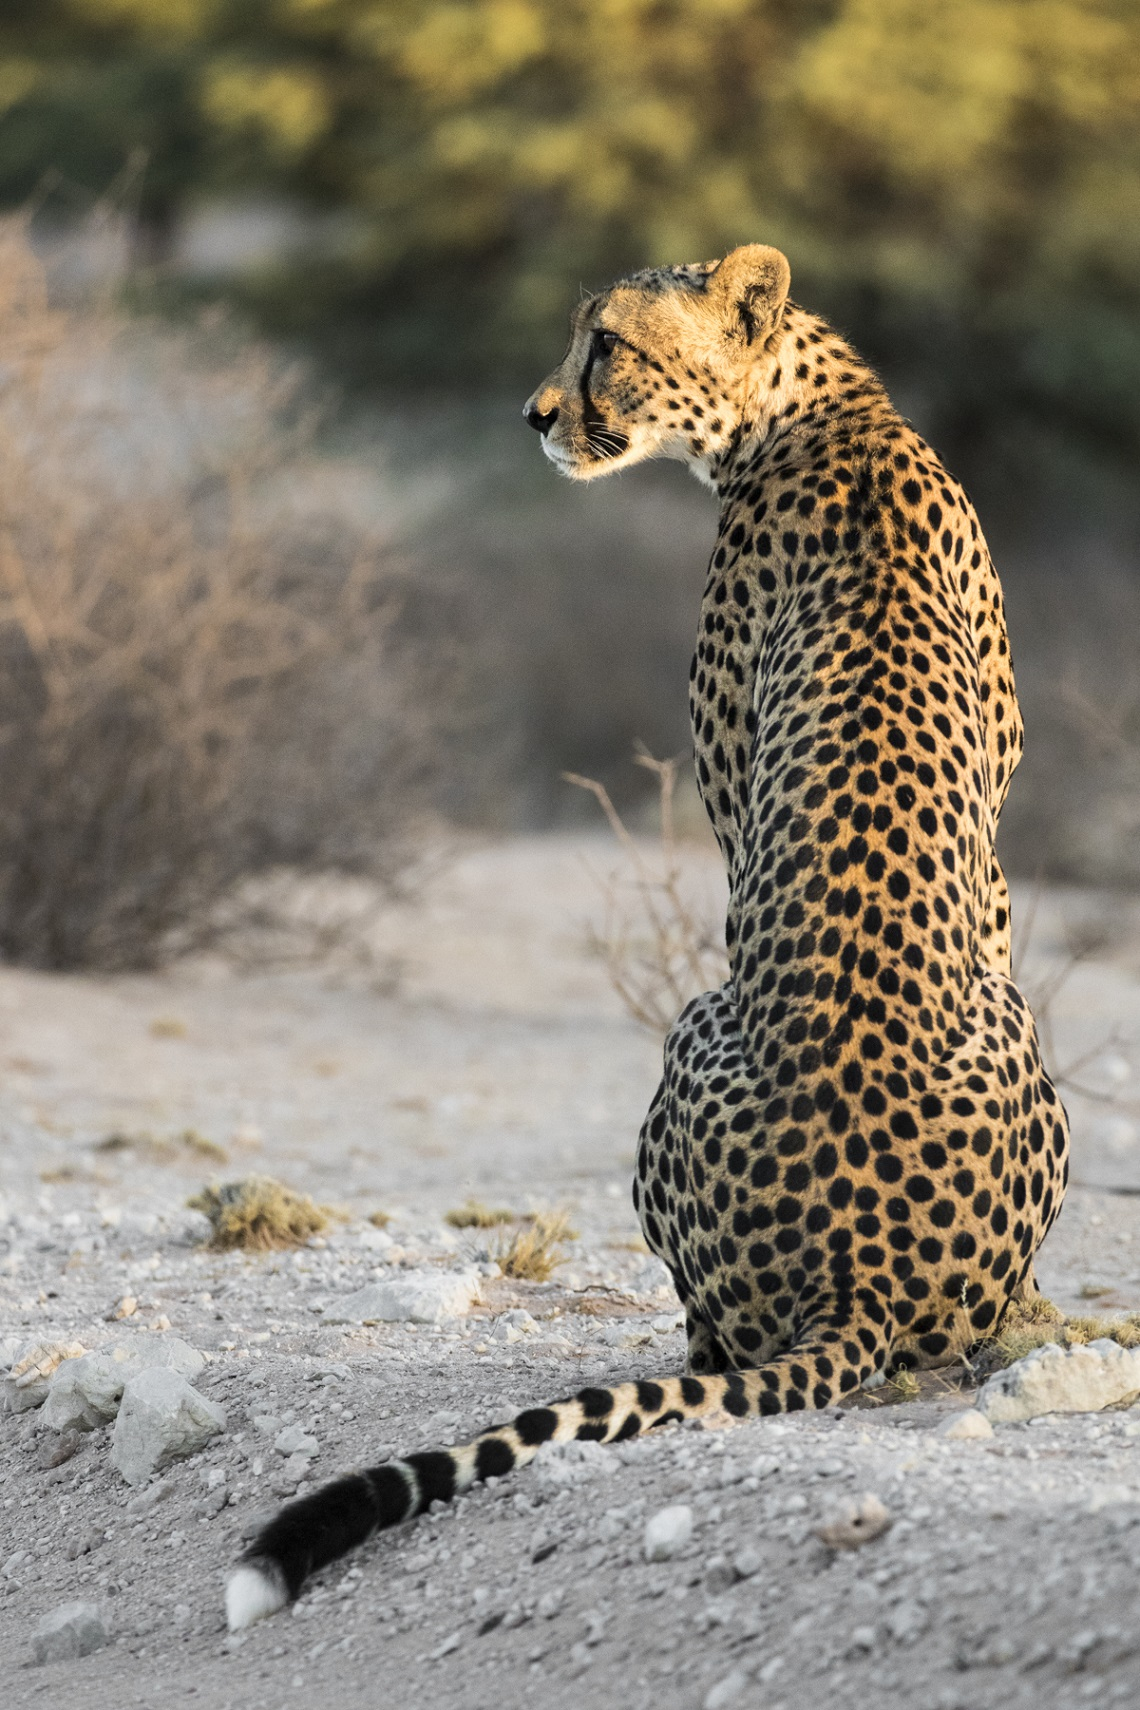 kgalagadi-honeymoon-davide-gaglio-cheetah